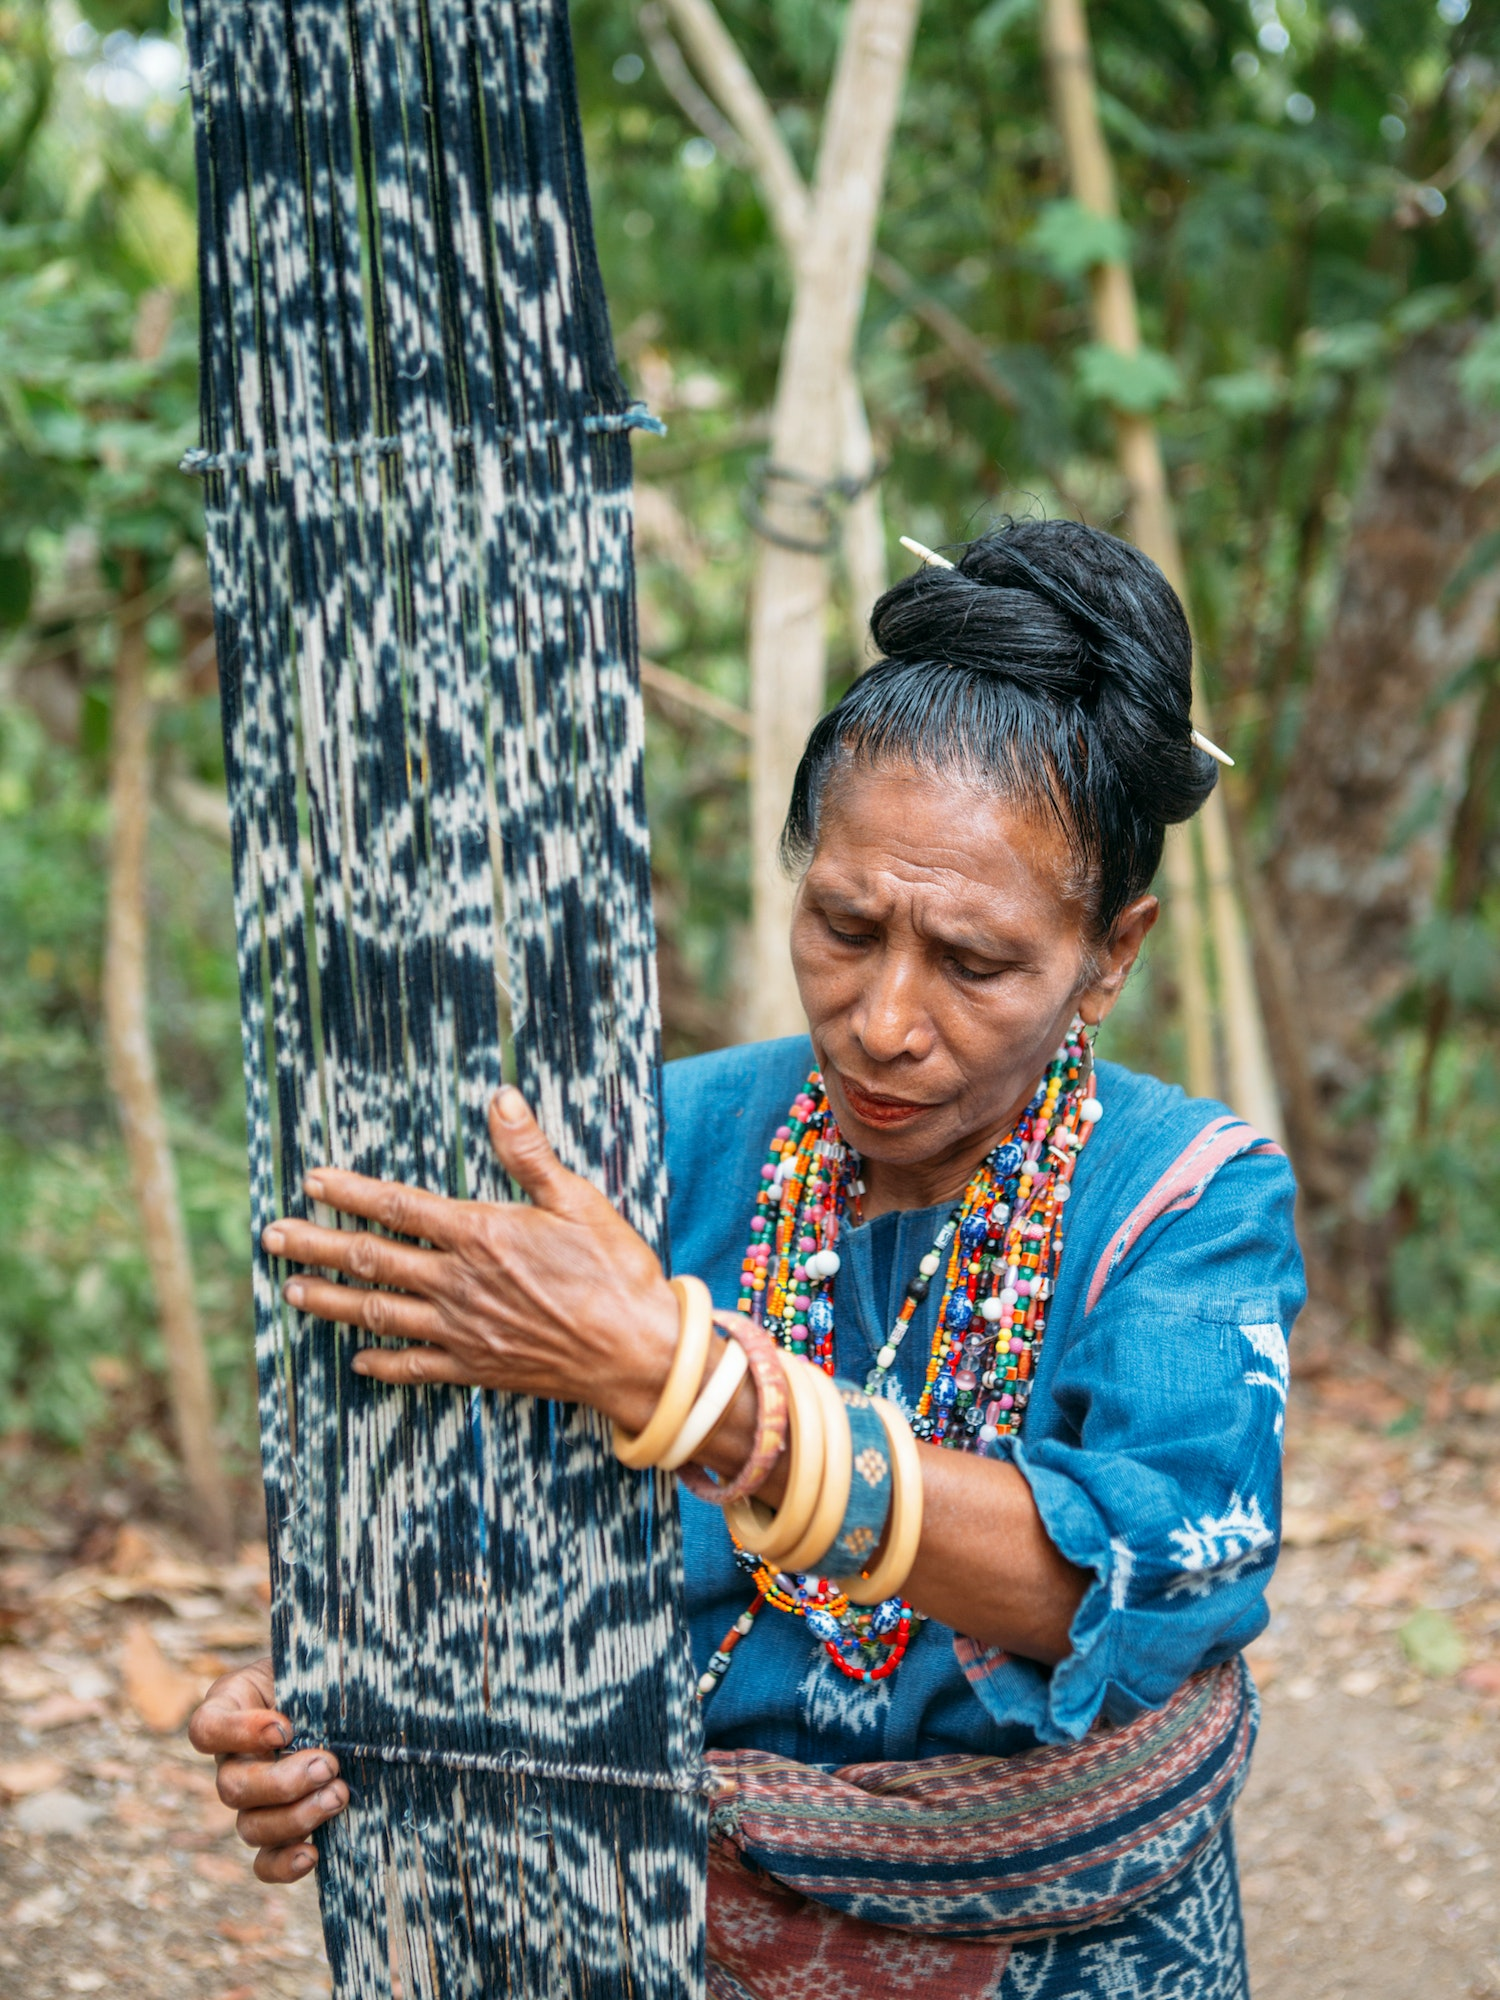 Flores, one of Indonesia's remote Lesser Sunda Islands, is famous for its fine ikat weaving.